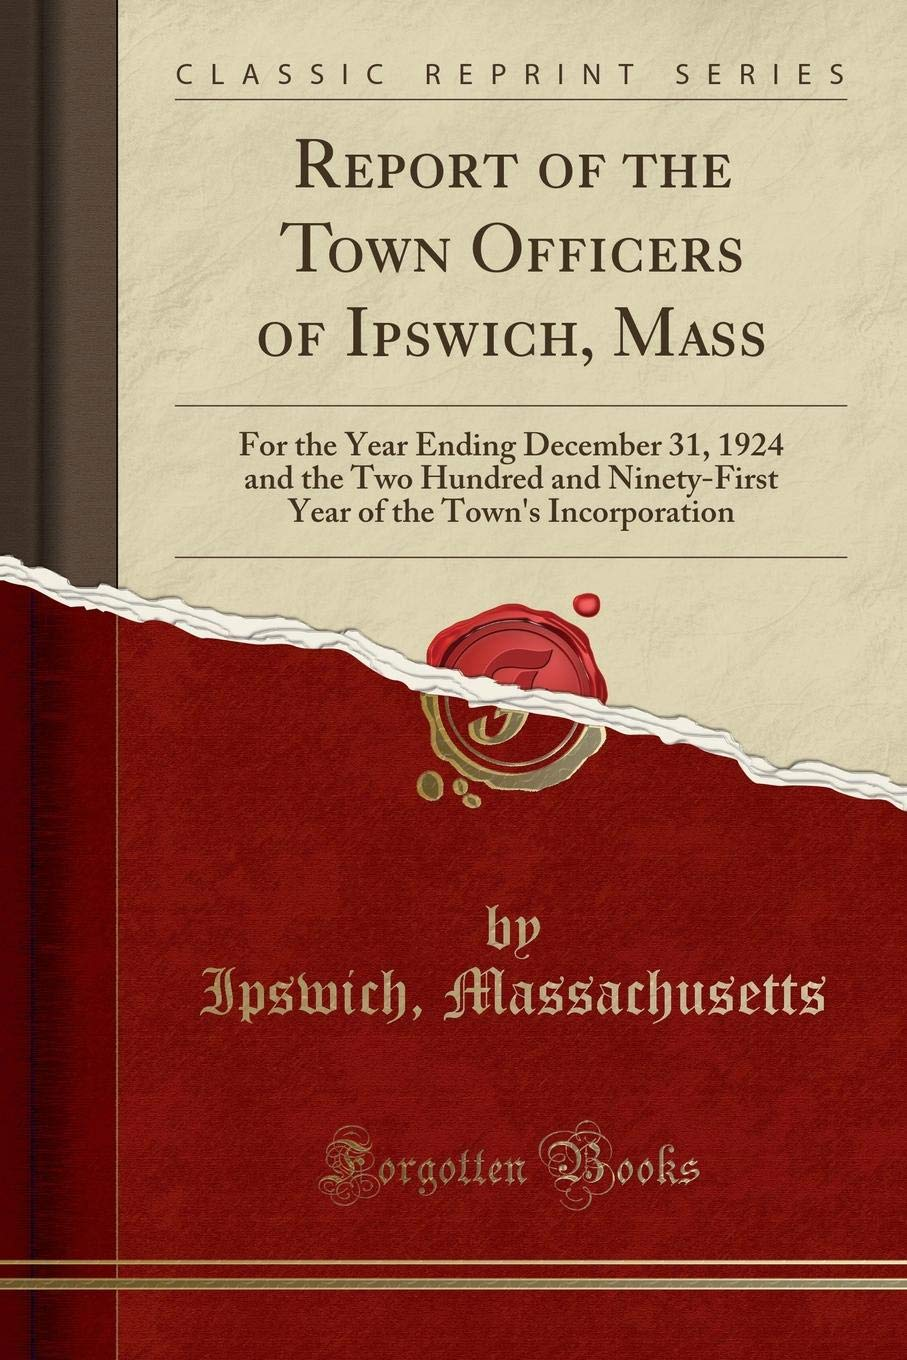 Read Online Report of the Town Officers of Ipswich, Mass: For the Year Ending December 31, 1924 and the Two Hundred and Ninety-First Year of the Town's Incorporation (Classic Reprint) pdf epub